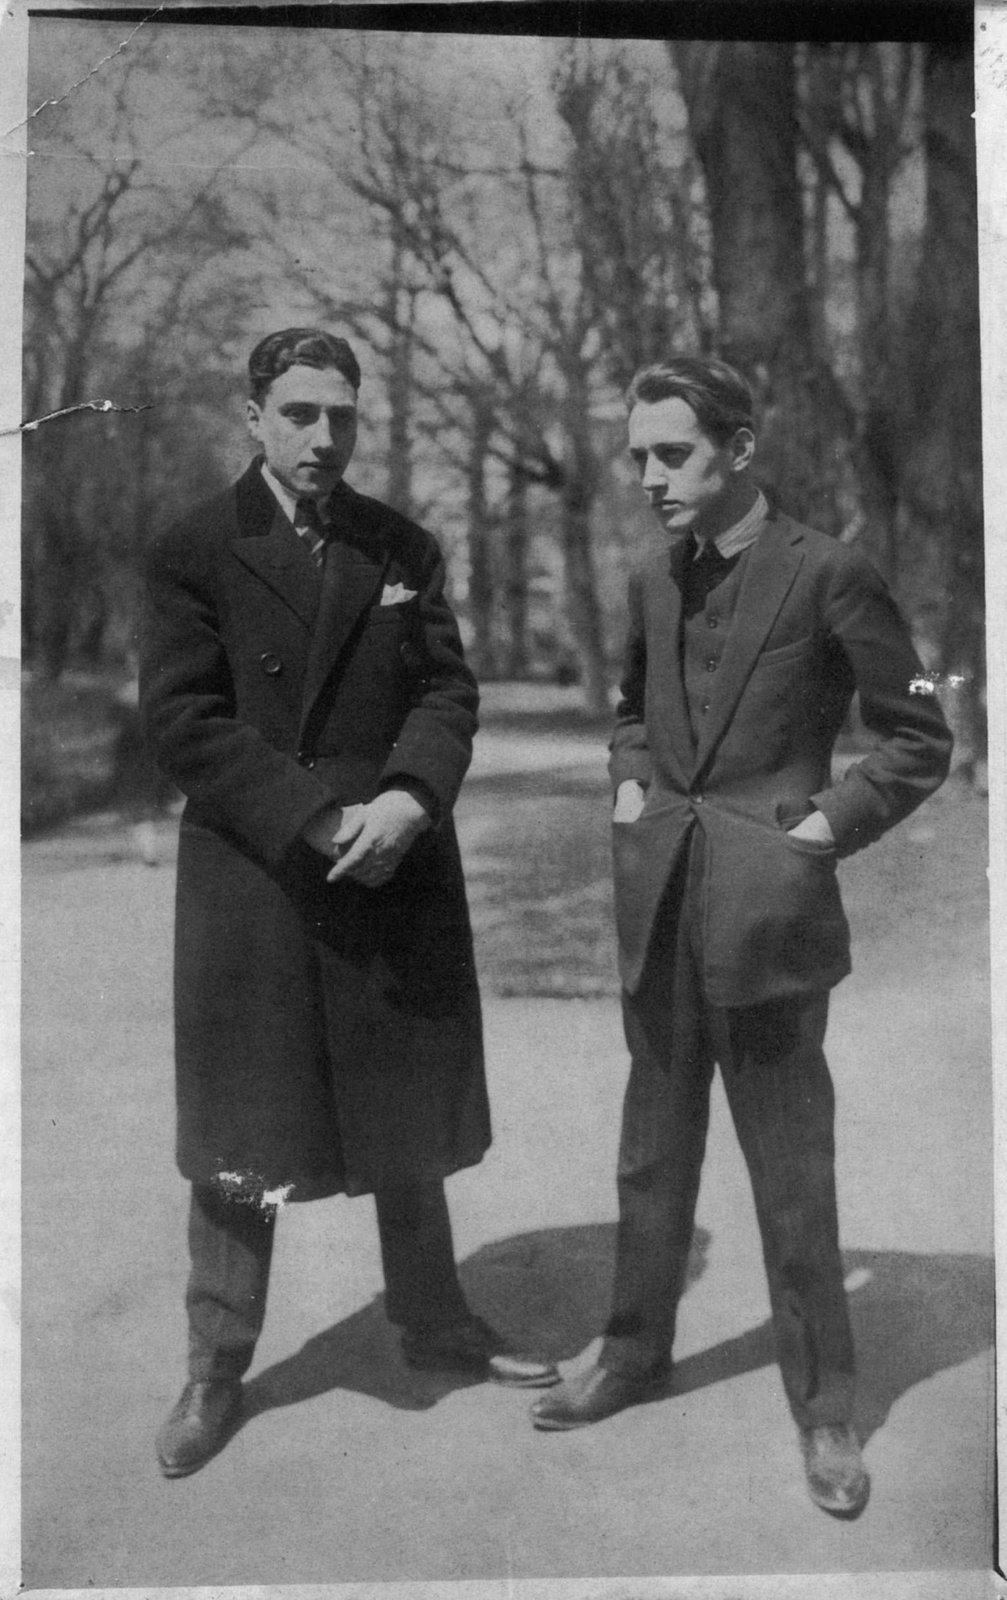 Ilarie Voronca (Eduard Marcus) and Victor Brauner [together they published the avant-garde magazine 75HP], 1920's, Unknown photographer,  Gellu Naum Foundation, Copyright Not Evaluated